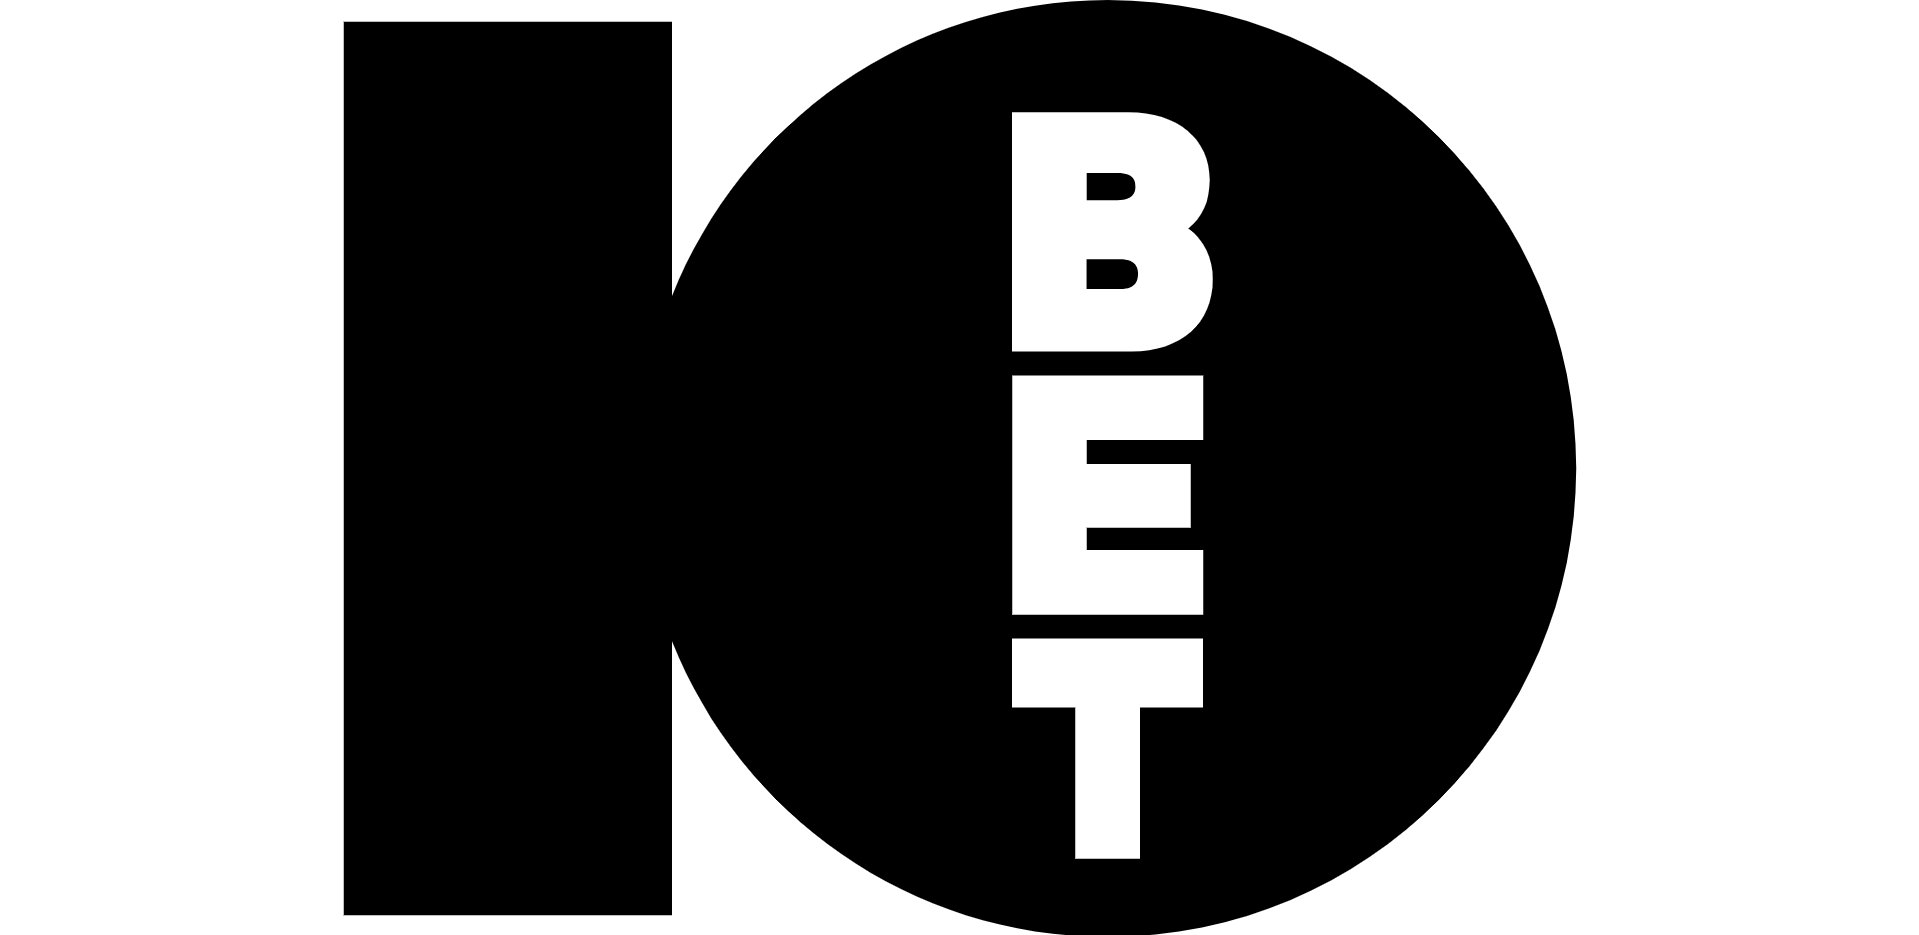 10bet Review 2020: All About 10bet's Main Features